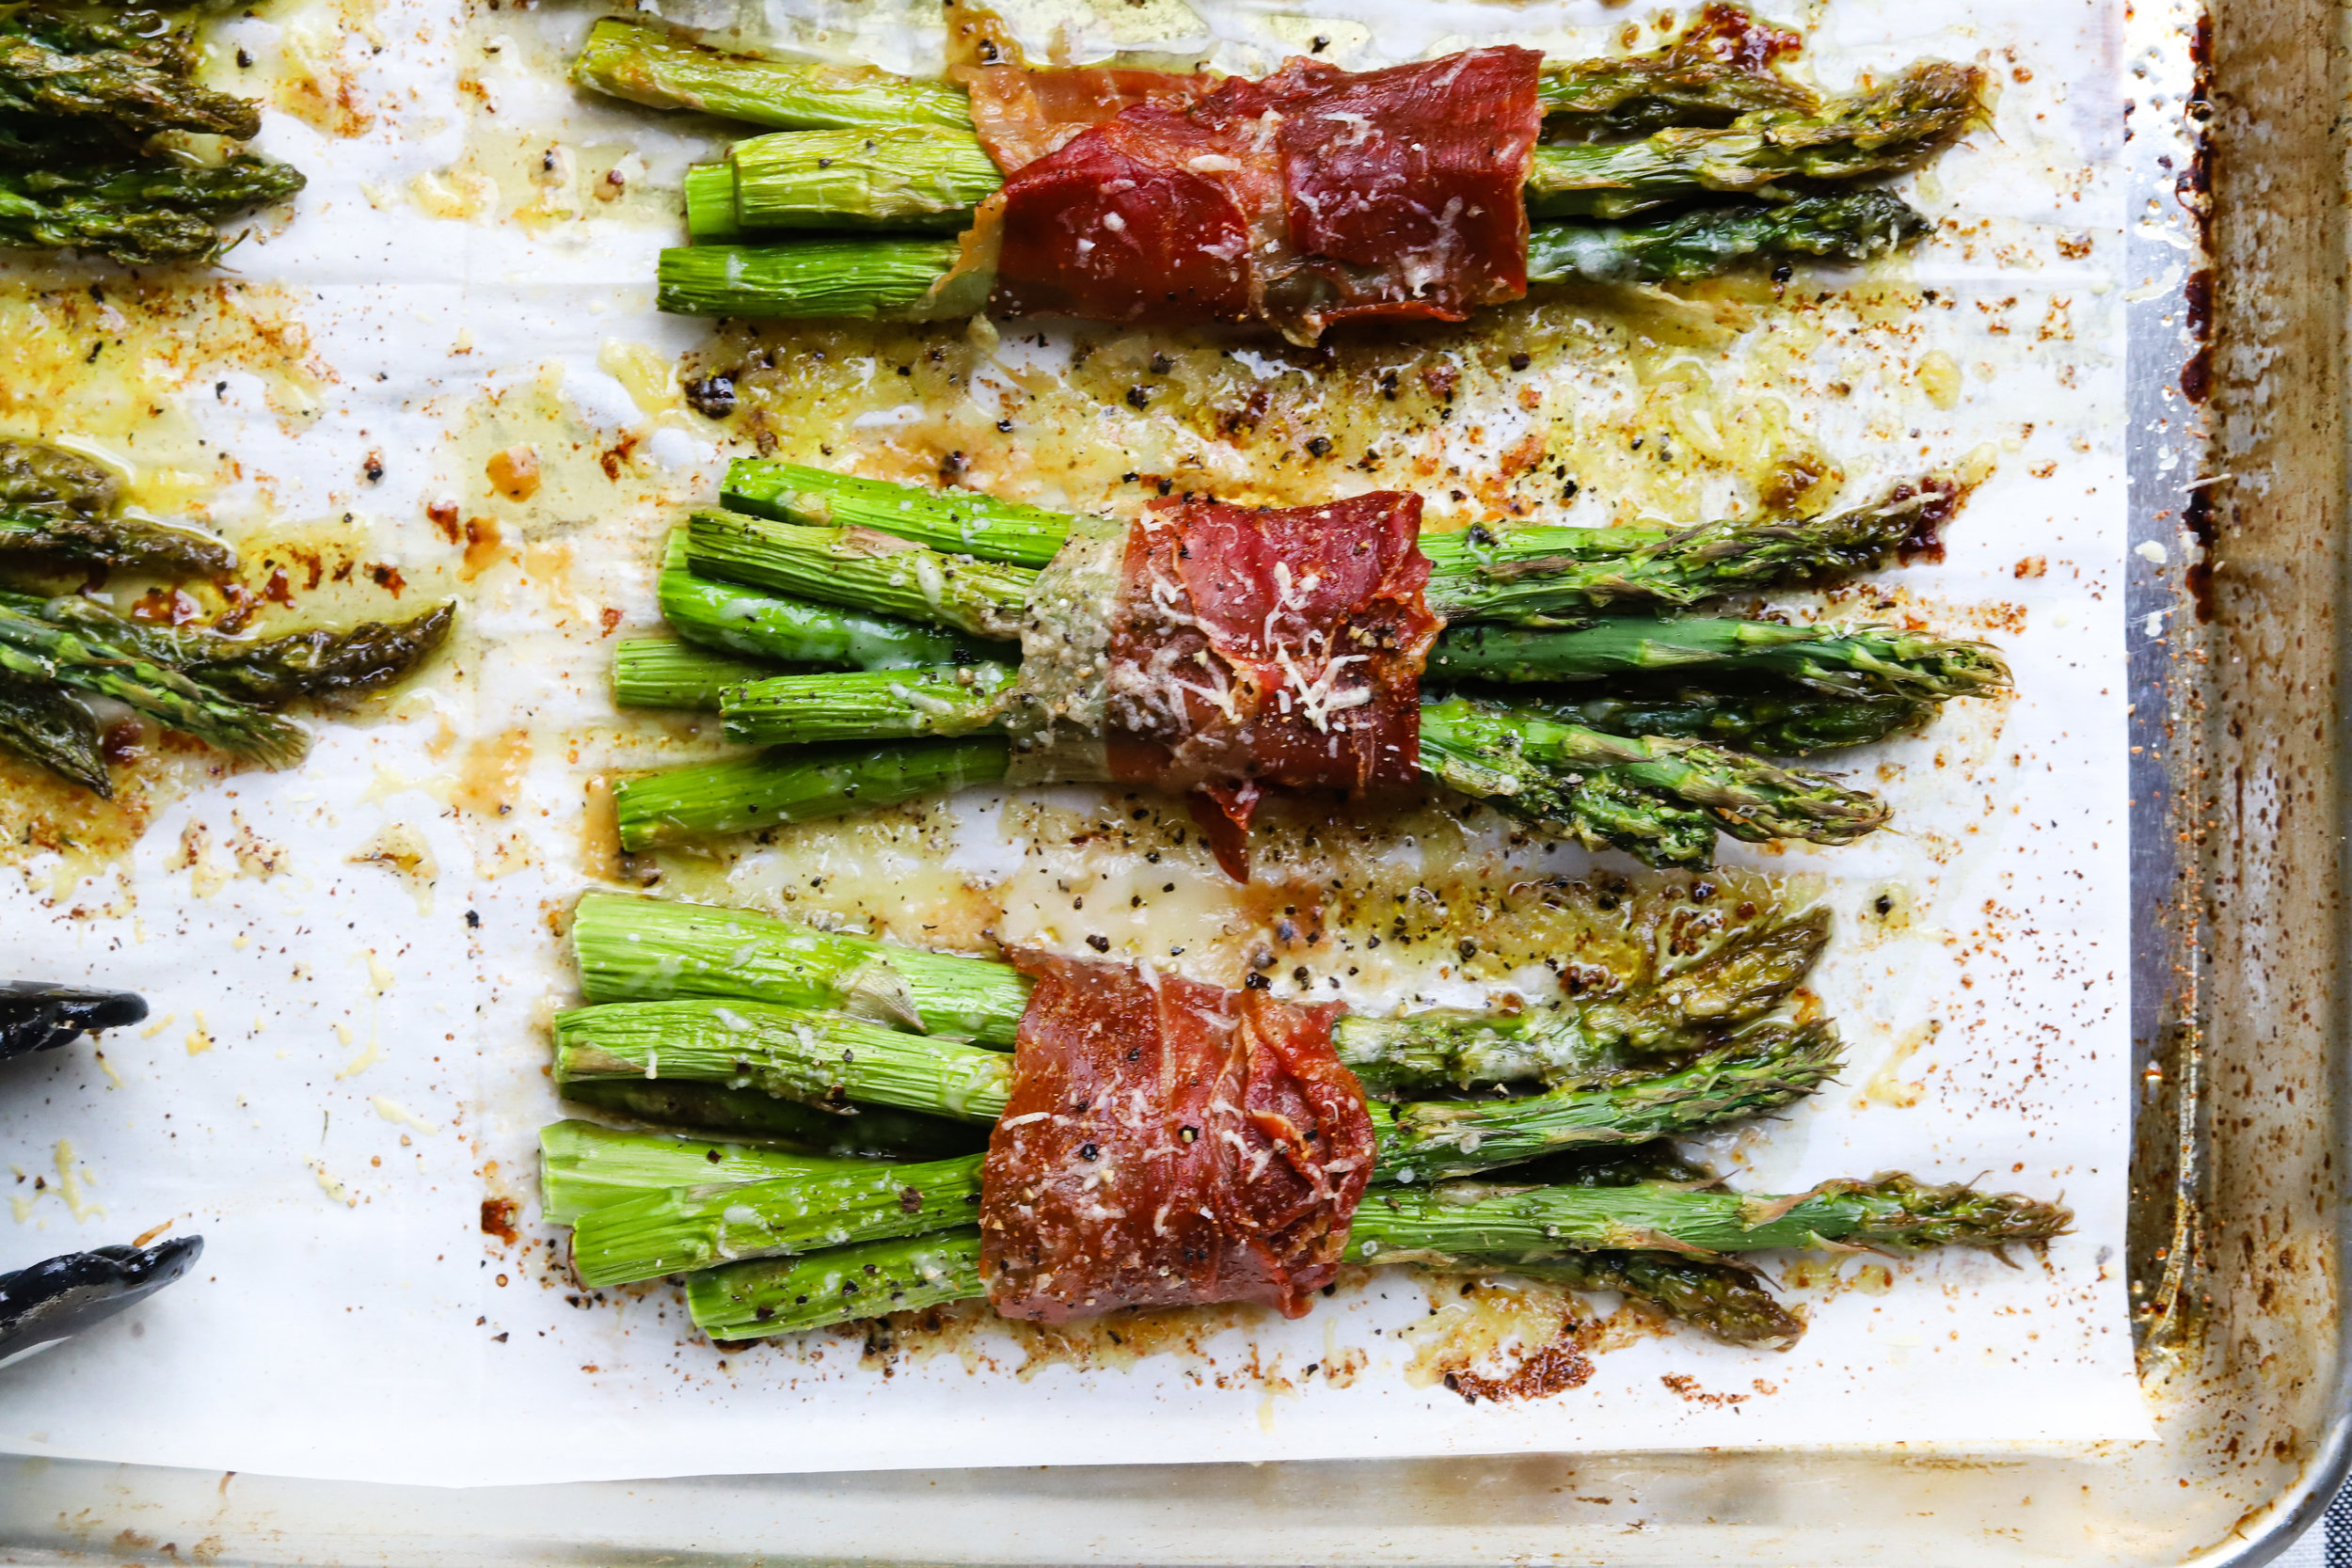 Cheesy Prosciutto Wrapped Asparagus